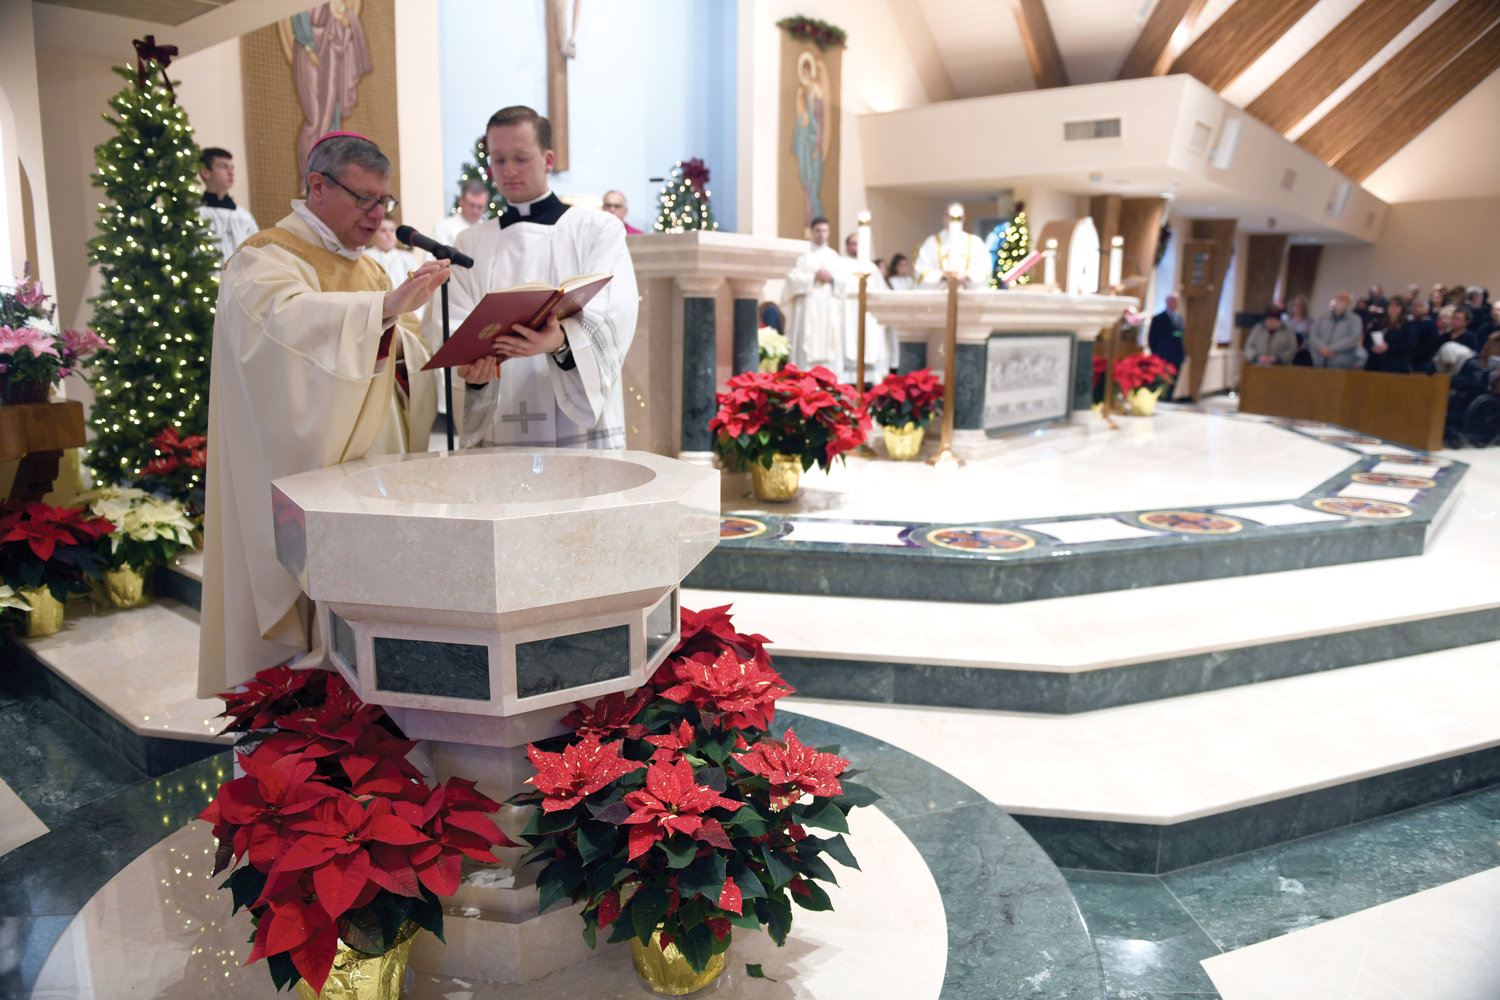 Bishop Colacicco blesses the baptismal font. To his right is Father Michael Connolly, parochial vicar of St. Columba's.